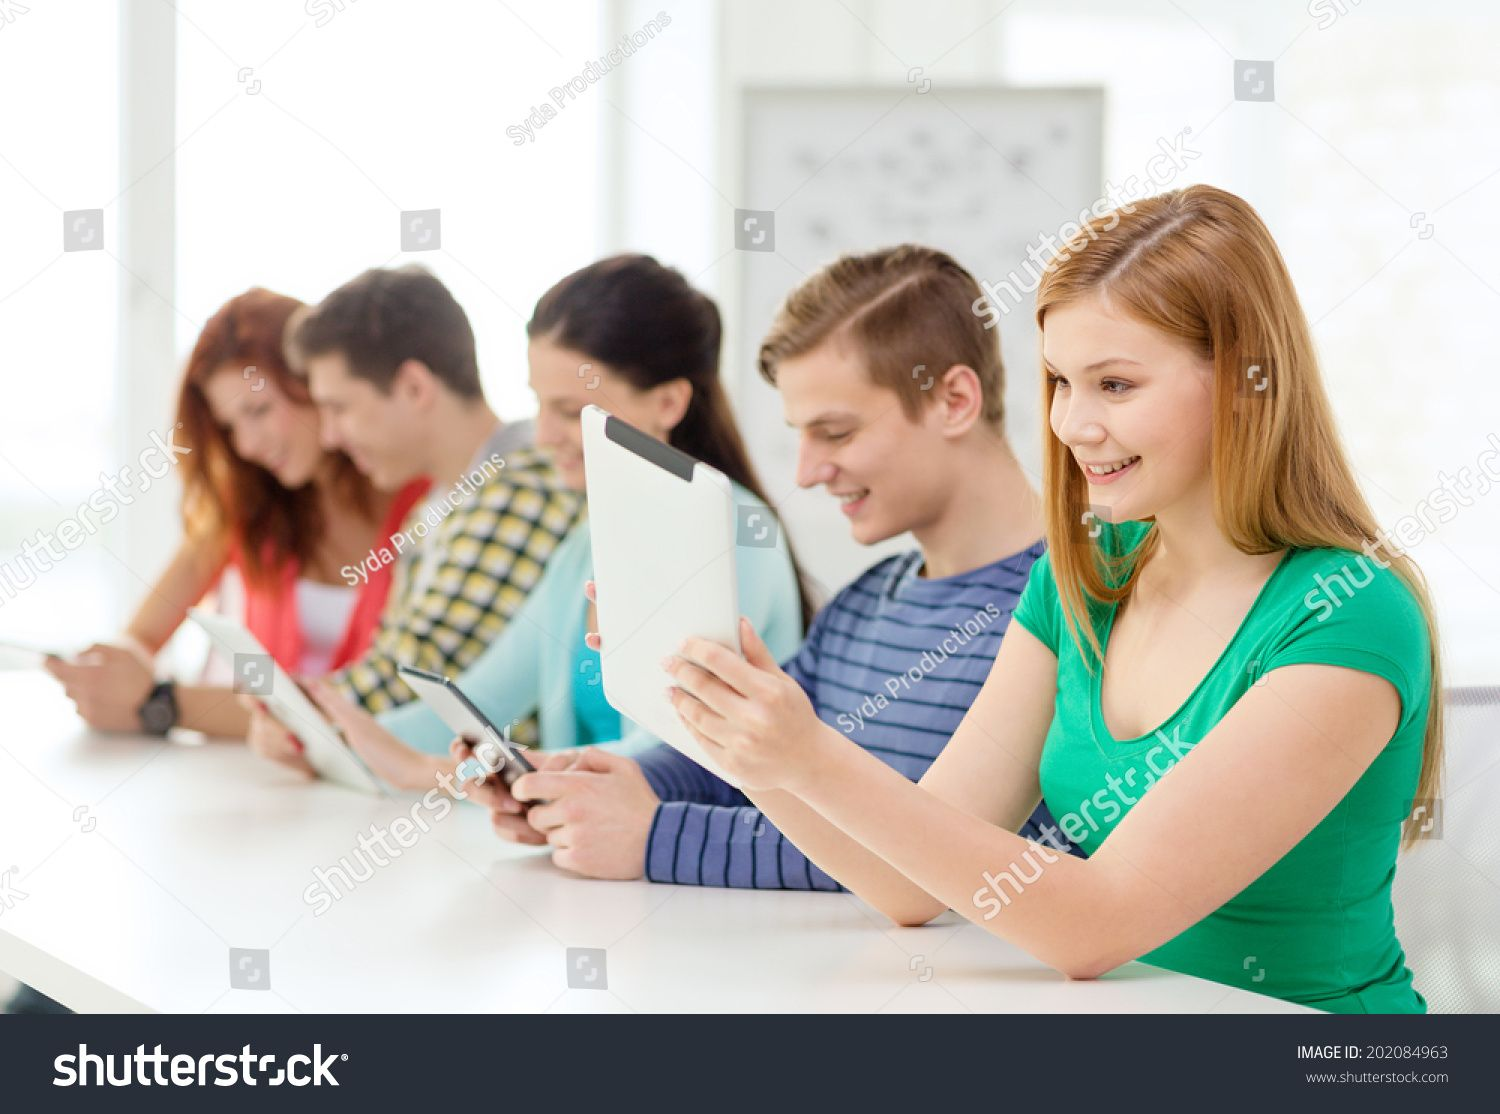 education, technology and internet concept - smiling students with tablet pc computers at school #Ad , #AFFILIATE, #concept#smiling#internet#education